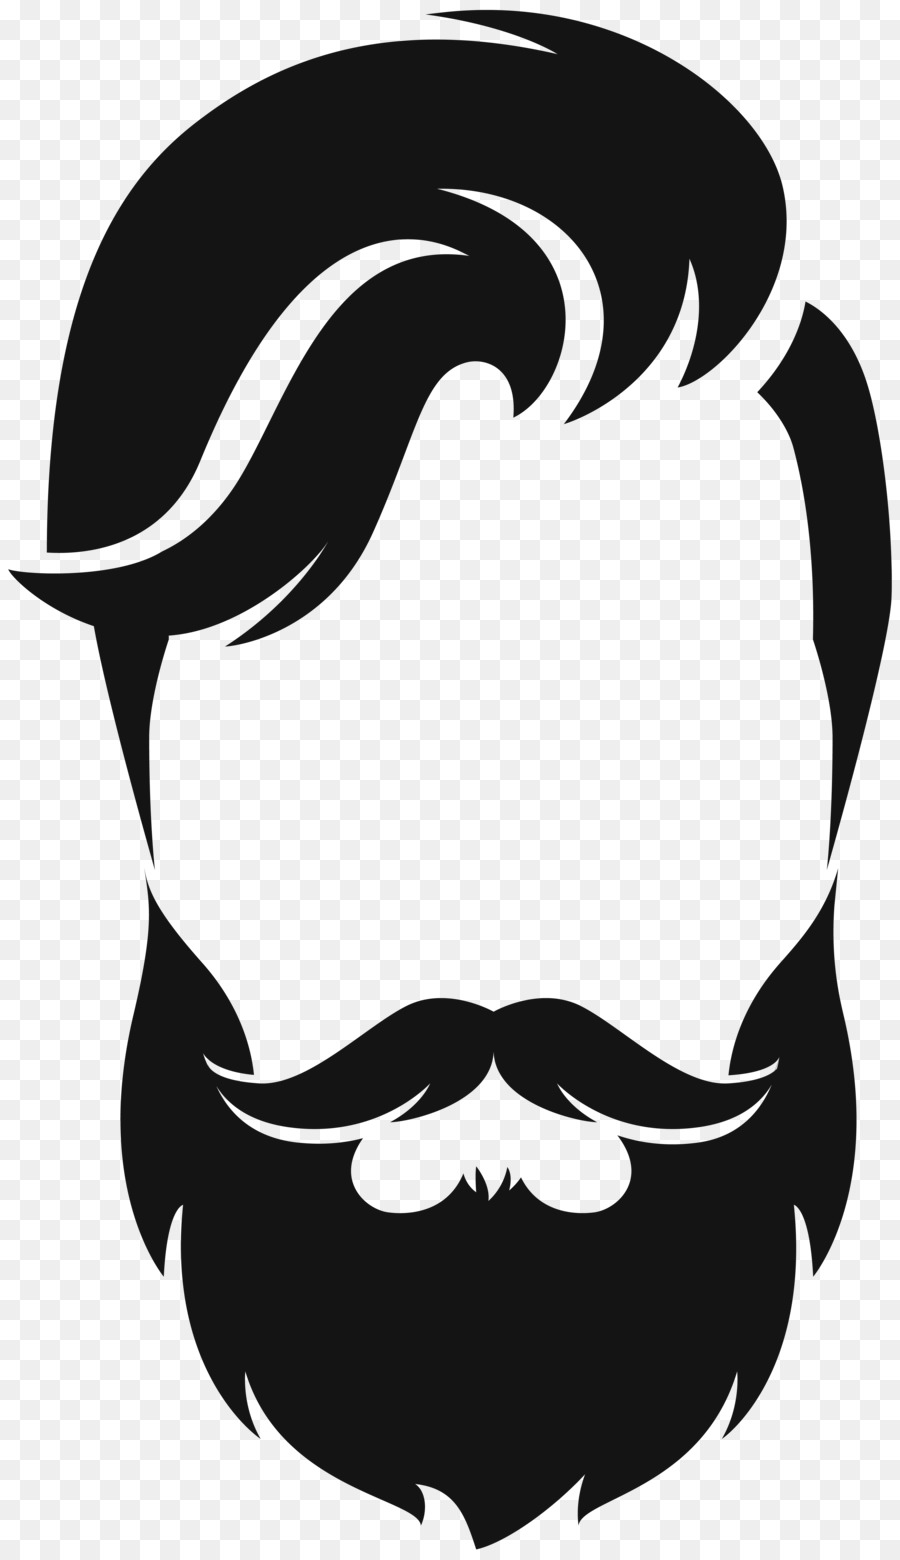 vector transparent library Beard clipart real. Transparent free for download.